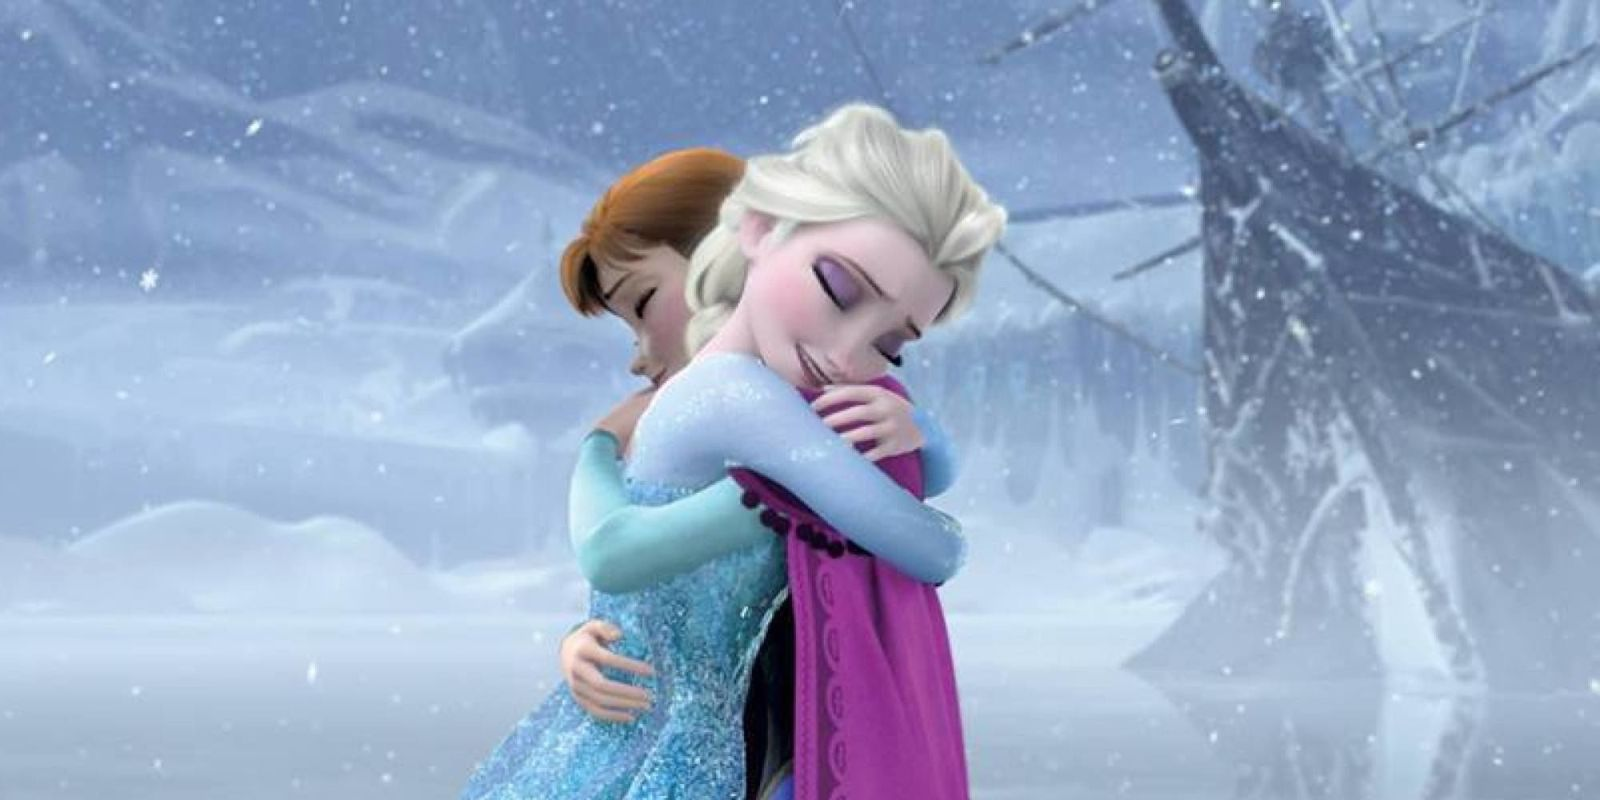 frozen 2 movie plot, release date, cast and everything you need to know